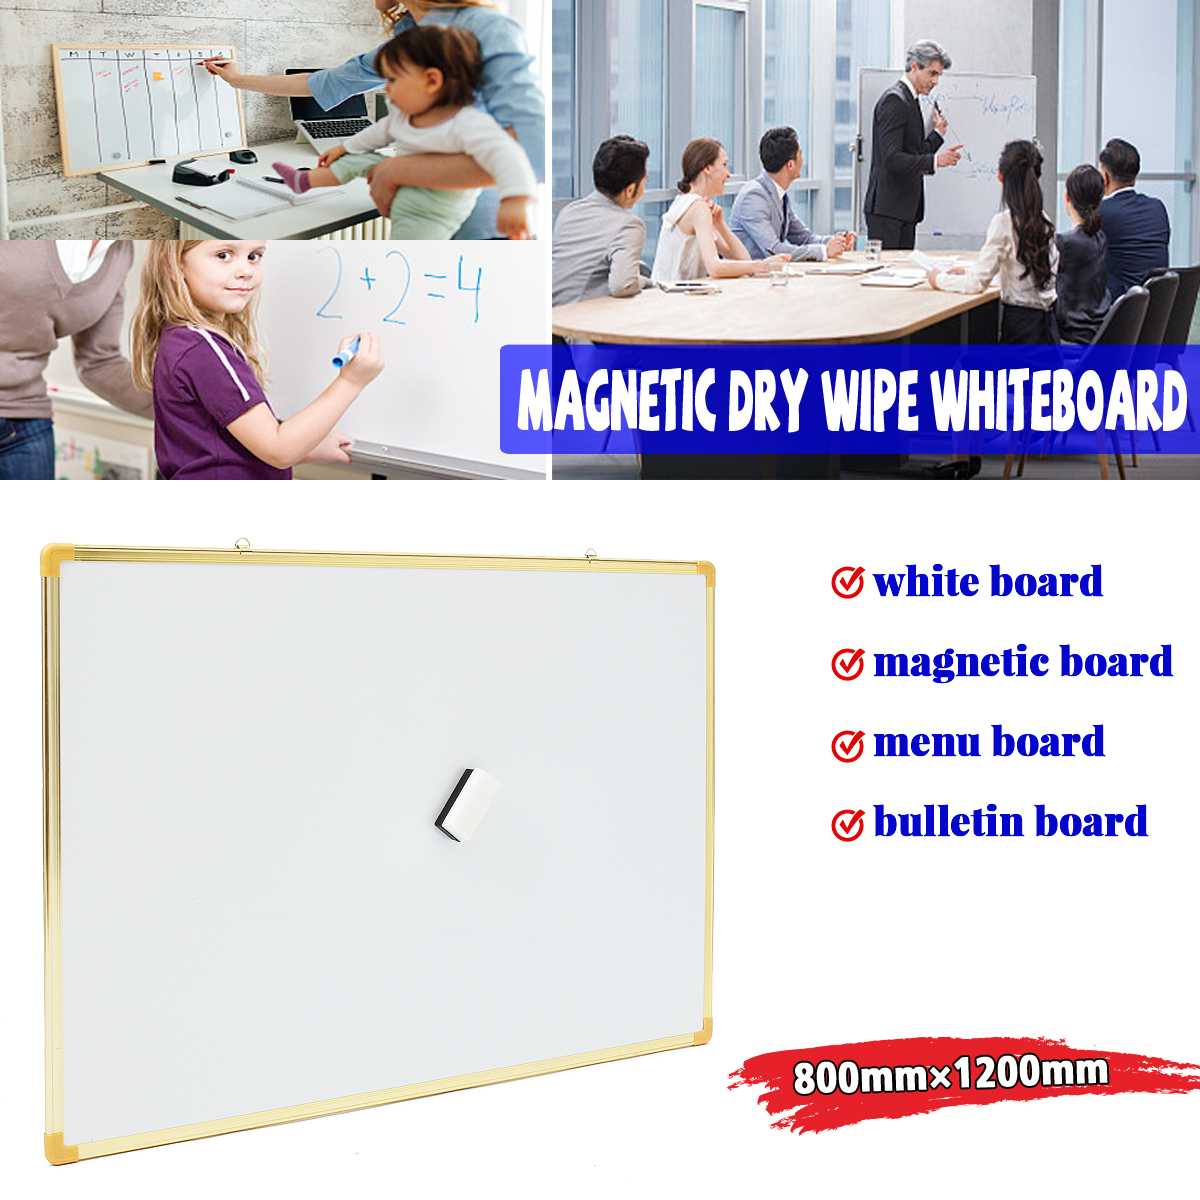 Kicute 1pcs 800mm*1200mm Double Side Writing Whiteboard Notice Memo Board Dry Erase Board and Magnetic Dry Wipe